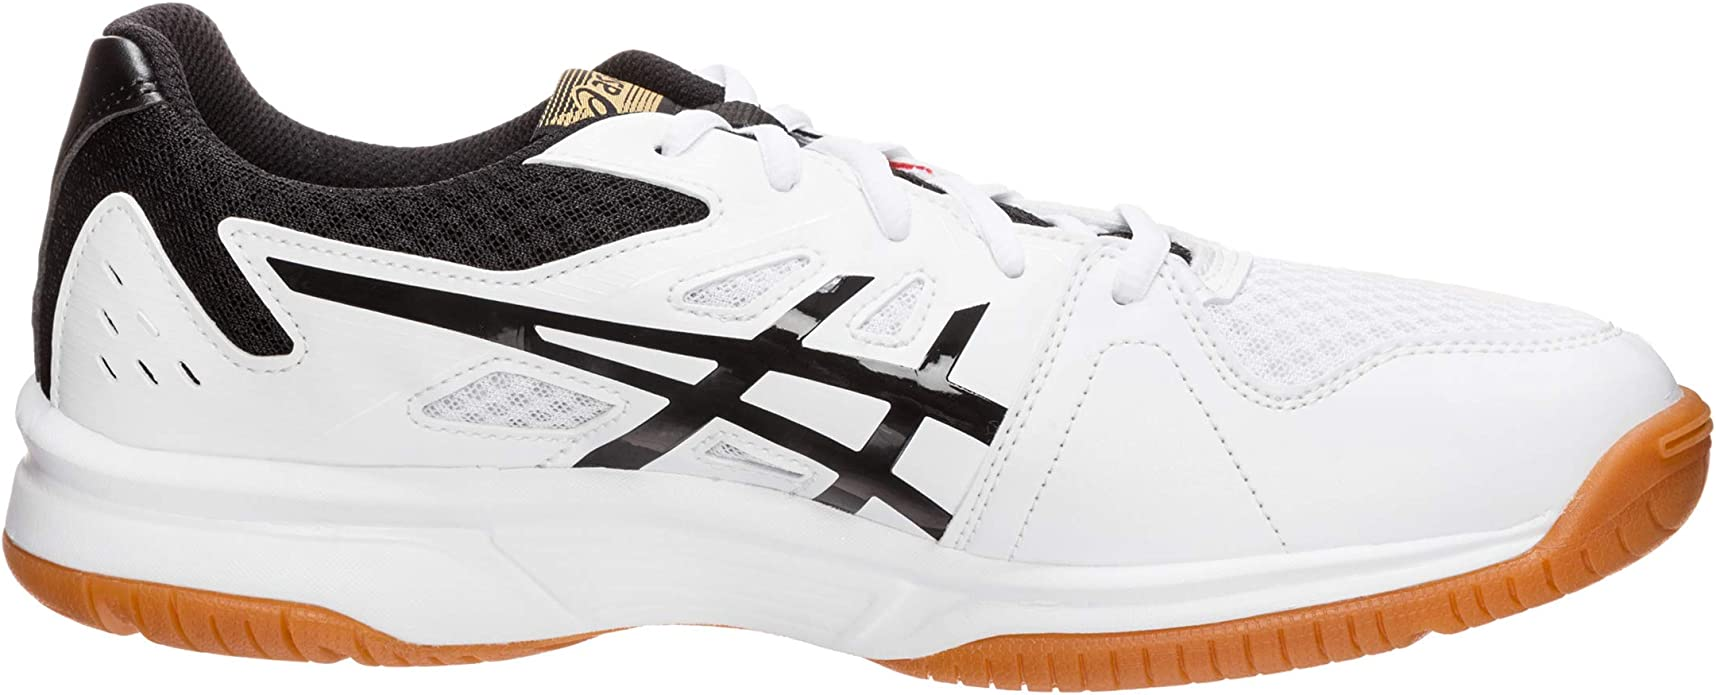 ASICS Gel-Upcourt 3 Zapatillas Indoor - SS19-42.5: Amazon.es: Zapatos y complementos